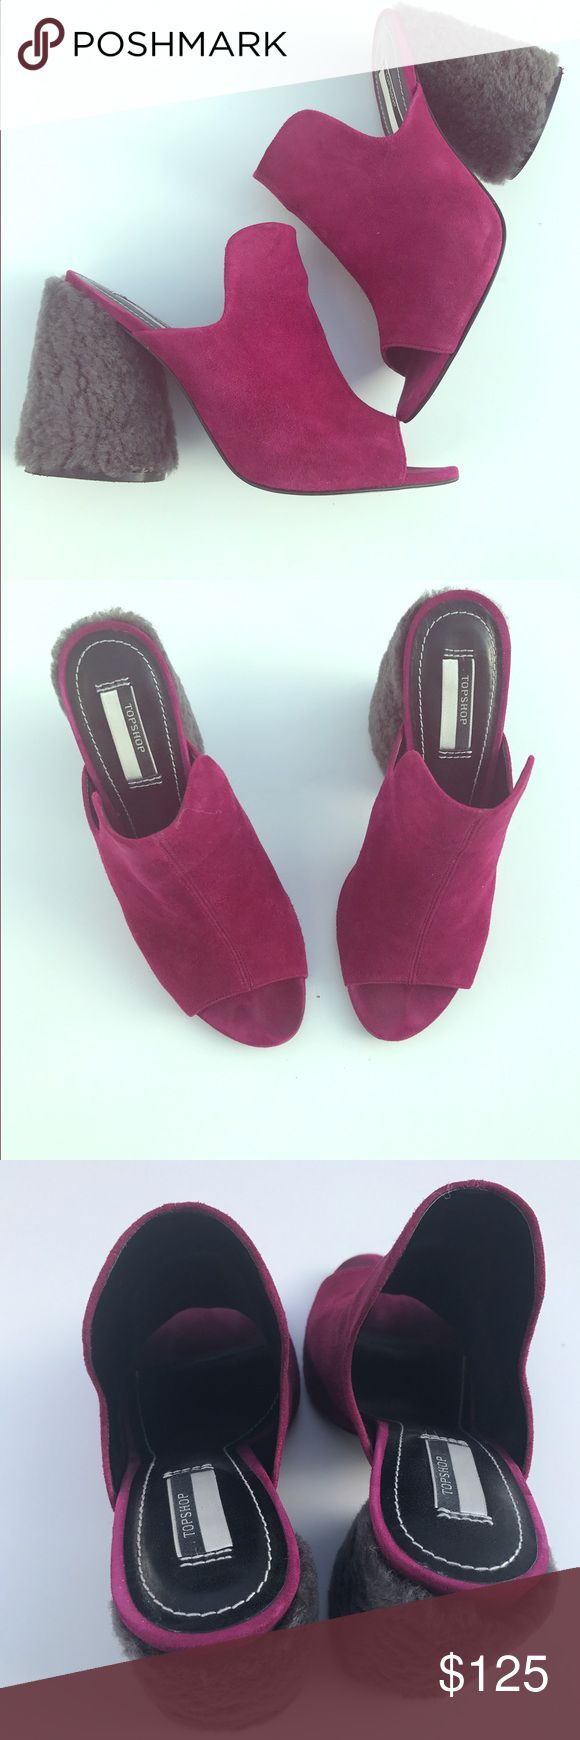 "TOPSHOP PERSIA ltd edition suede shearling mule Mules are having a moment, and we love this cool spin on the stylish shoe. In a striking magenta suede leather, these limited edition shoes also come with a unique shearling heel. Style with boyfriend jeans for a trending feel. Heel height 4"" approx. 100% Leather Goat. Specialist Clean Only. Product Code: 32P07KMAG. Worn few times like new condition. Size 8.5/UK 6 sold out Topshop Shoes Mules & Clogs"